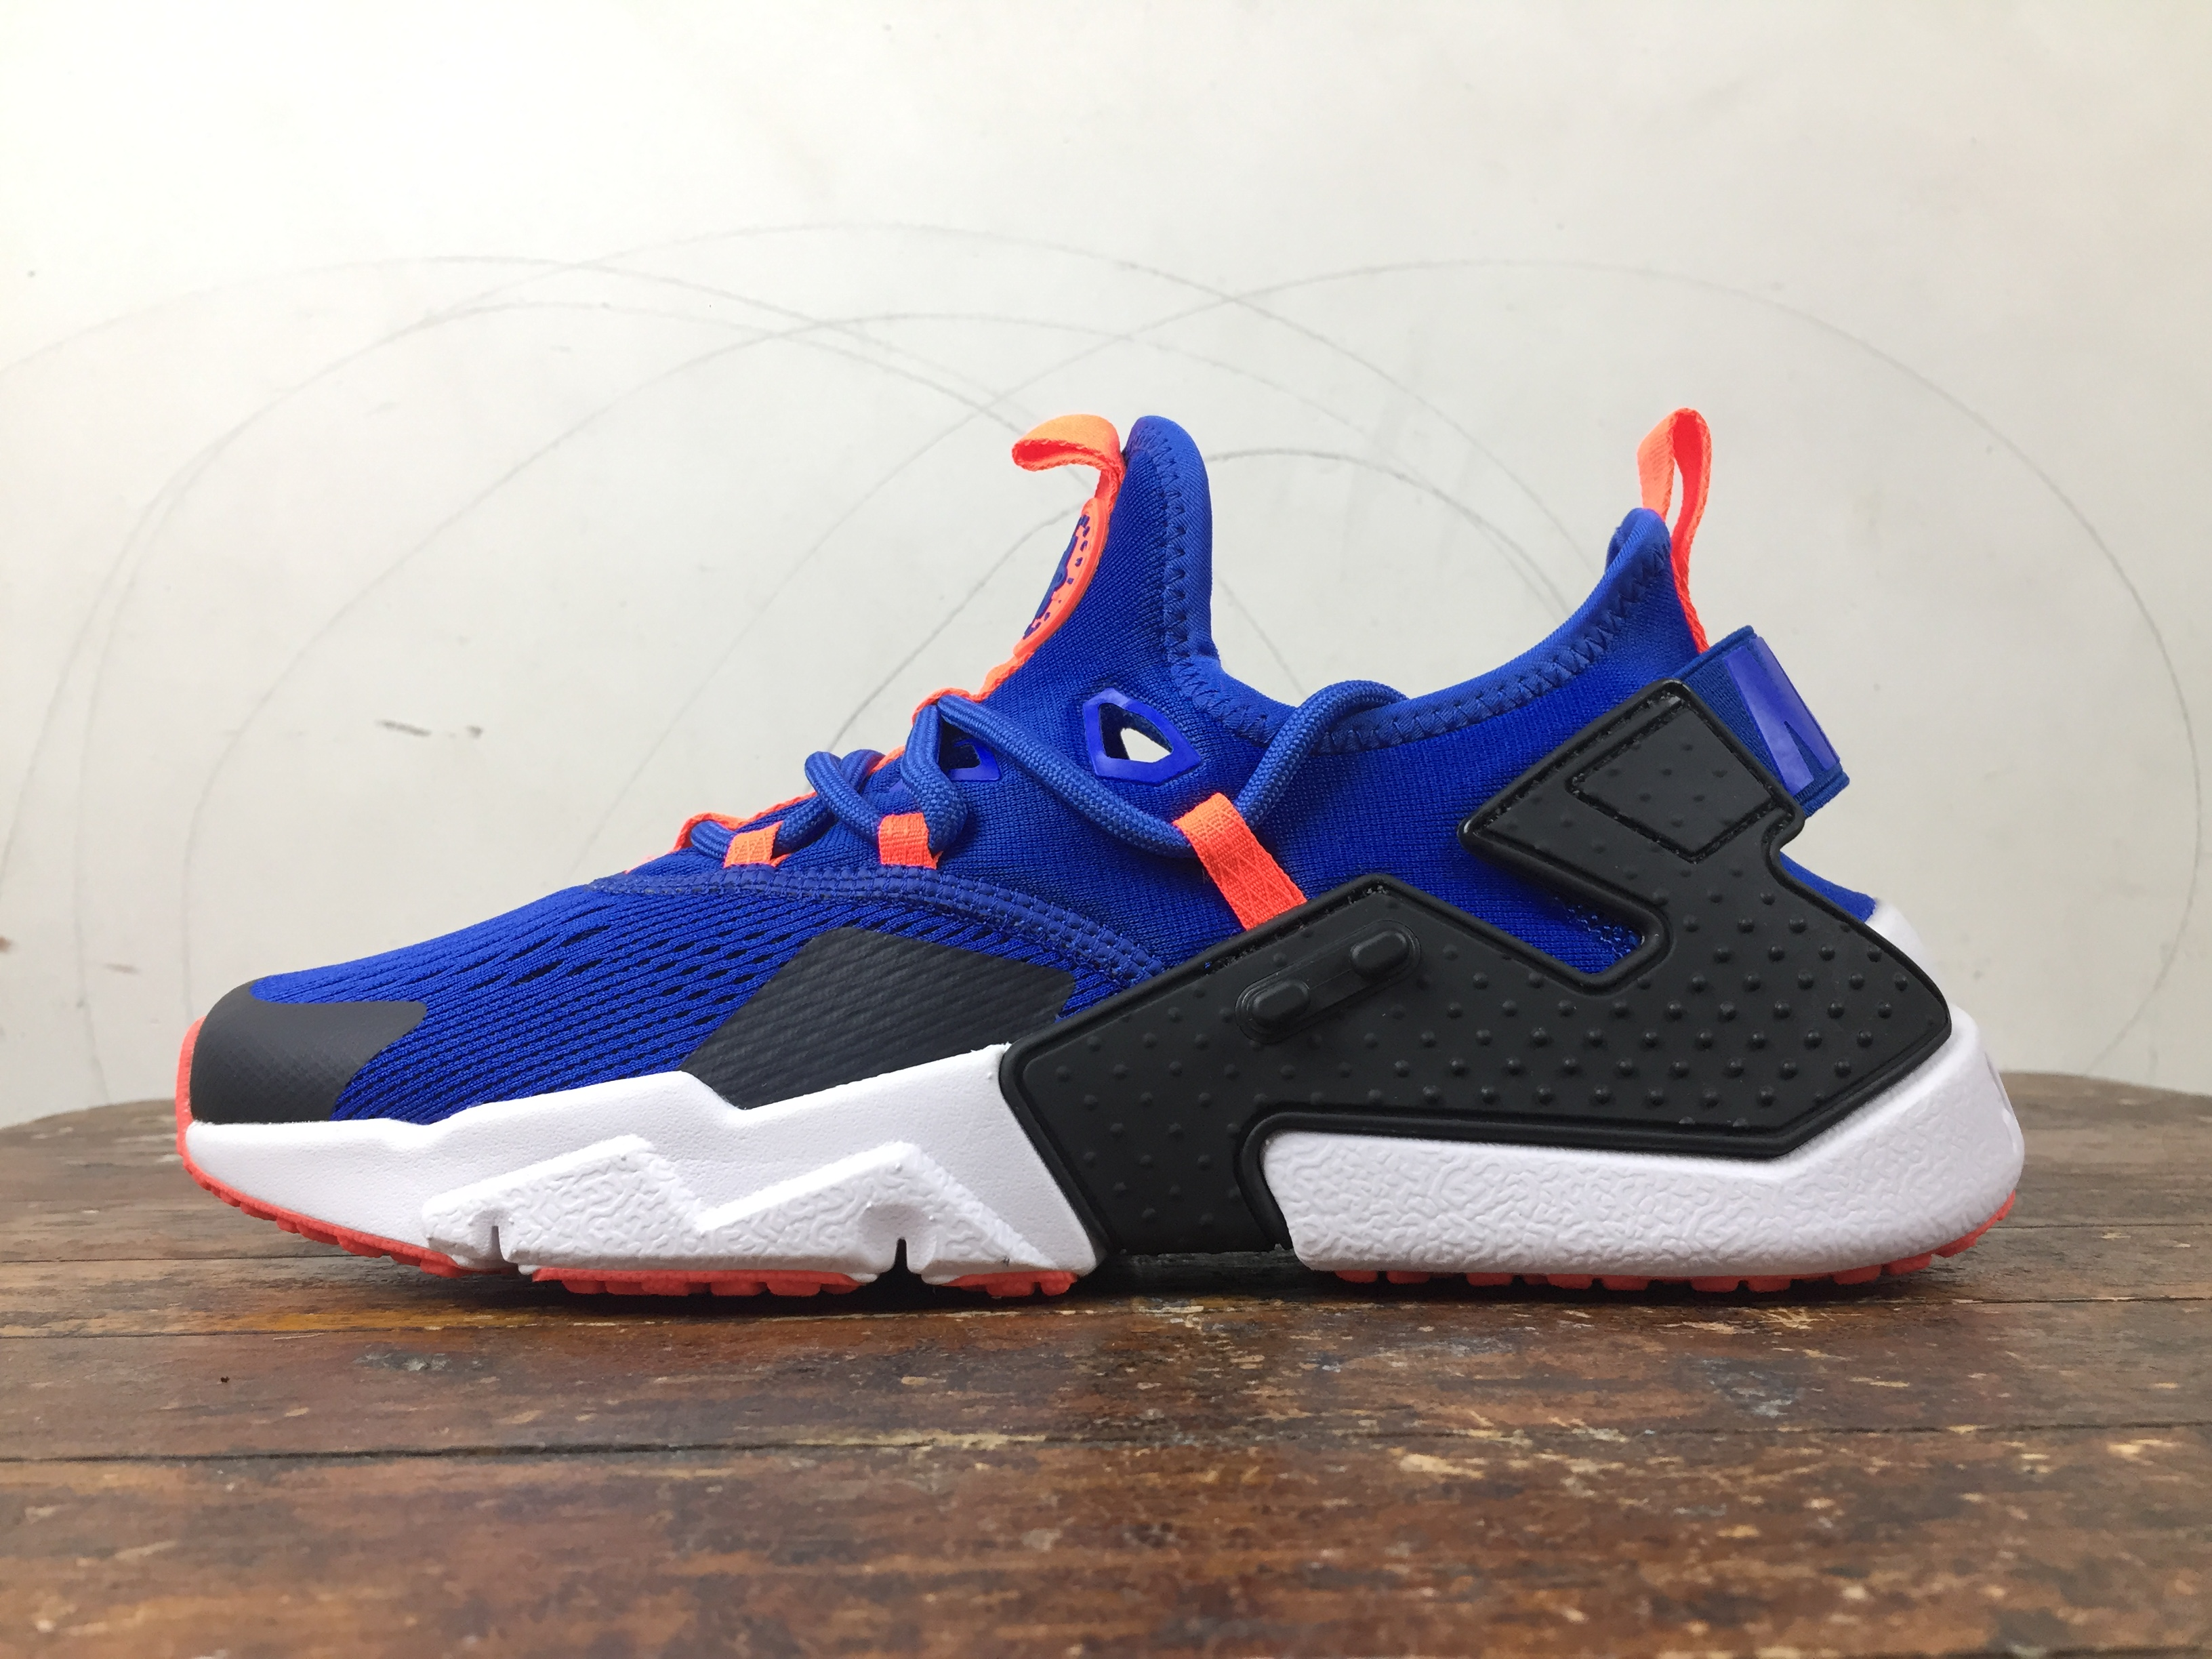 249ccf2511ea8 ... denmark nike air huarache drift blue orange. u2039 u203a 01803 77724